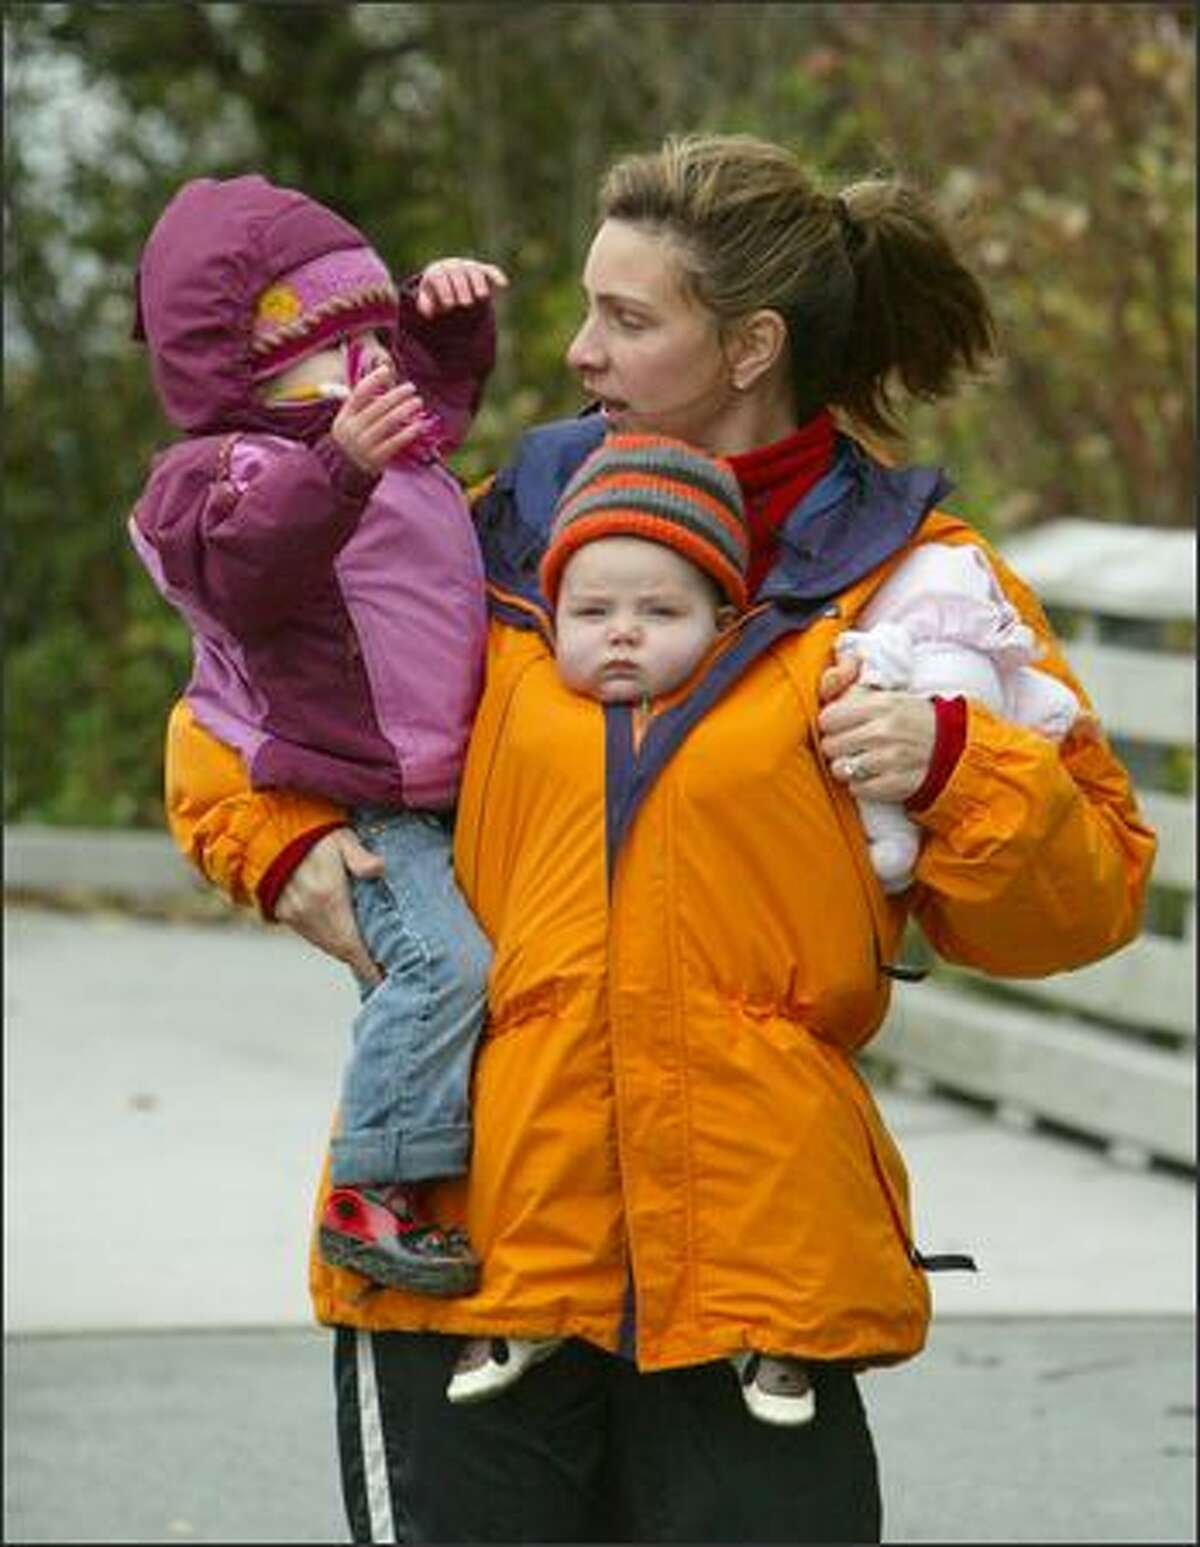 Jennie Bowen stops to talk with Frankie, 2, as Noah, 4 months, hangs in after a walk along the beach at Golden Gardens Park in Seattle on a blustery Monday.